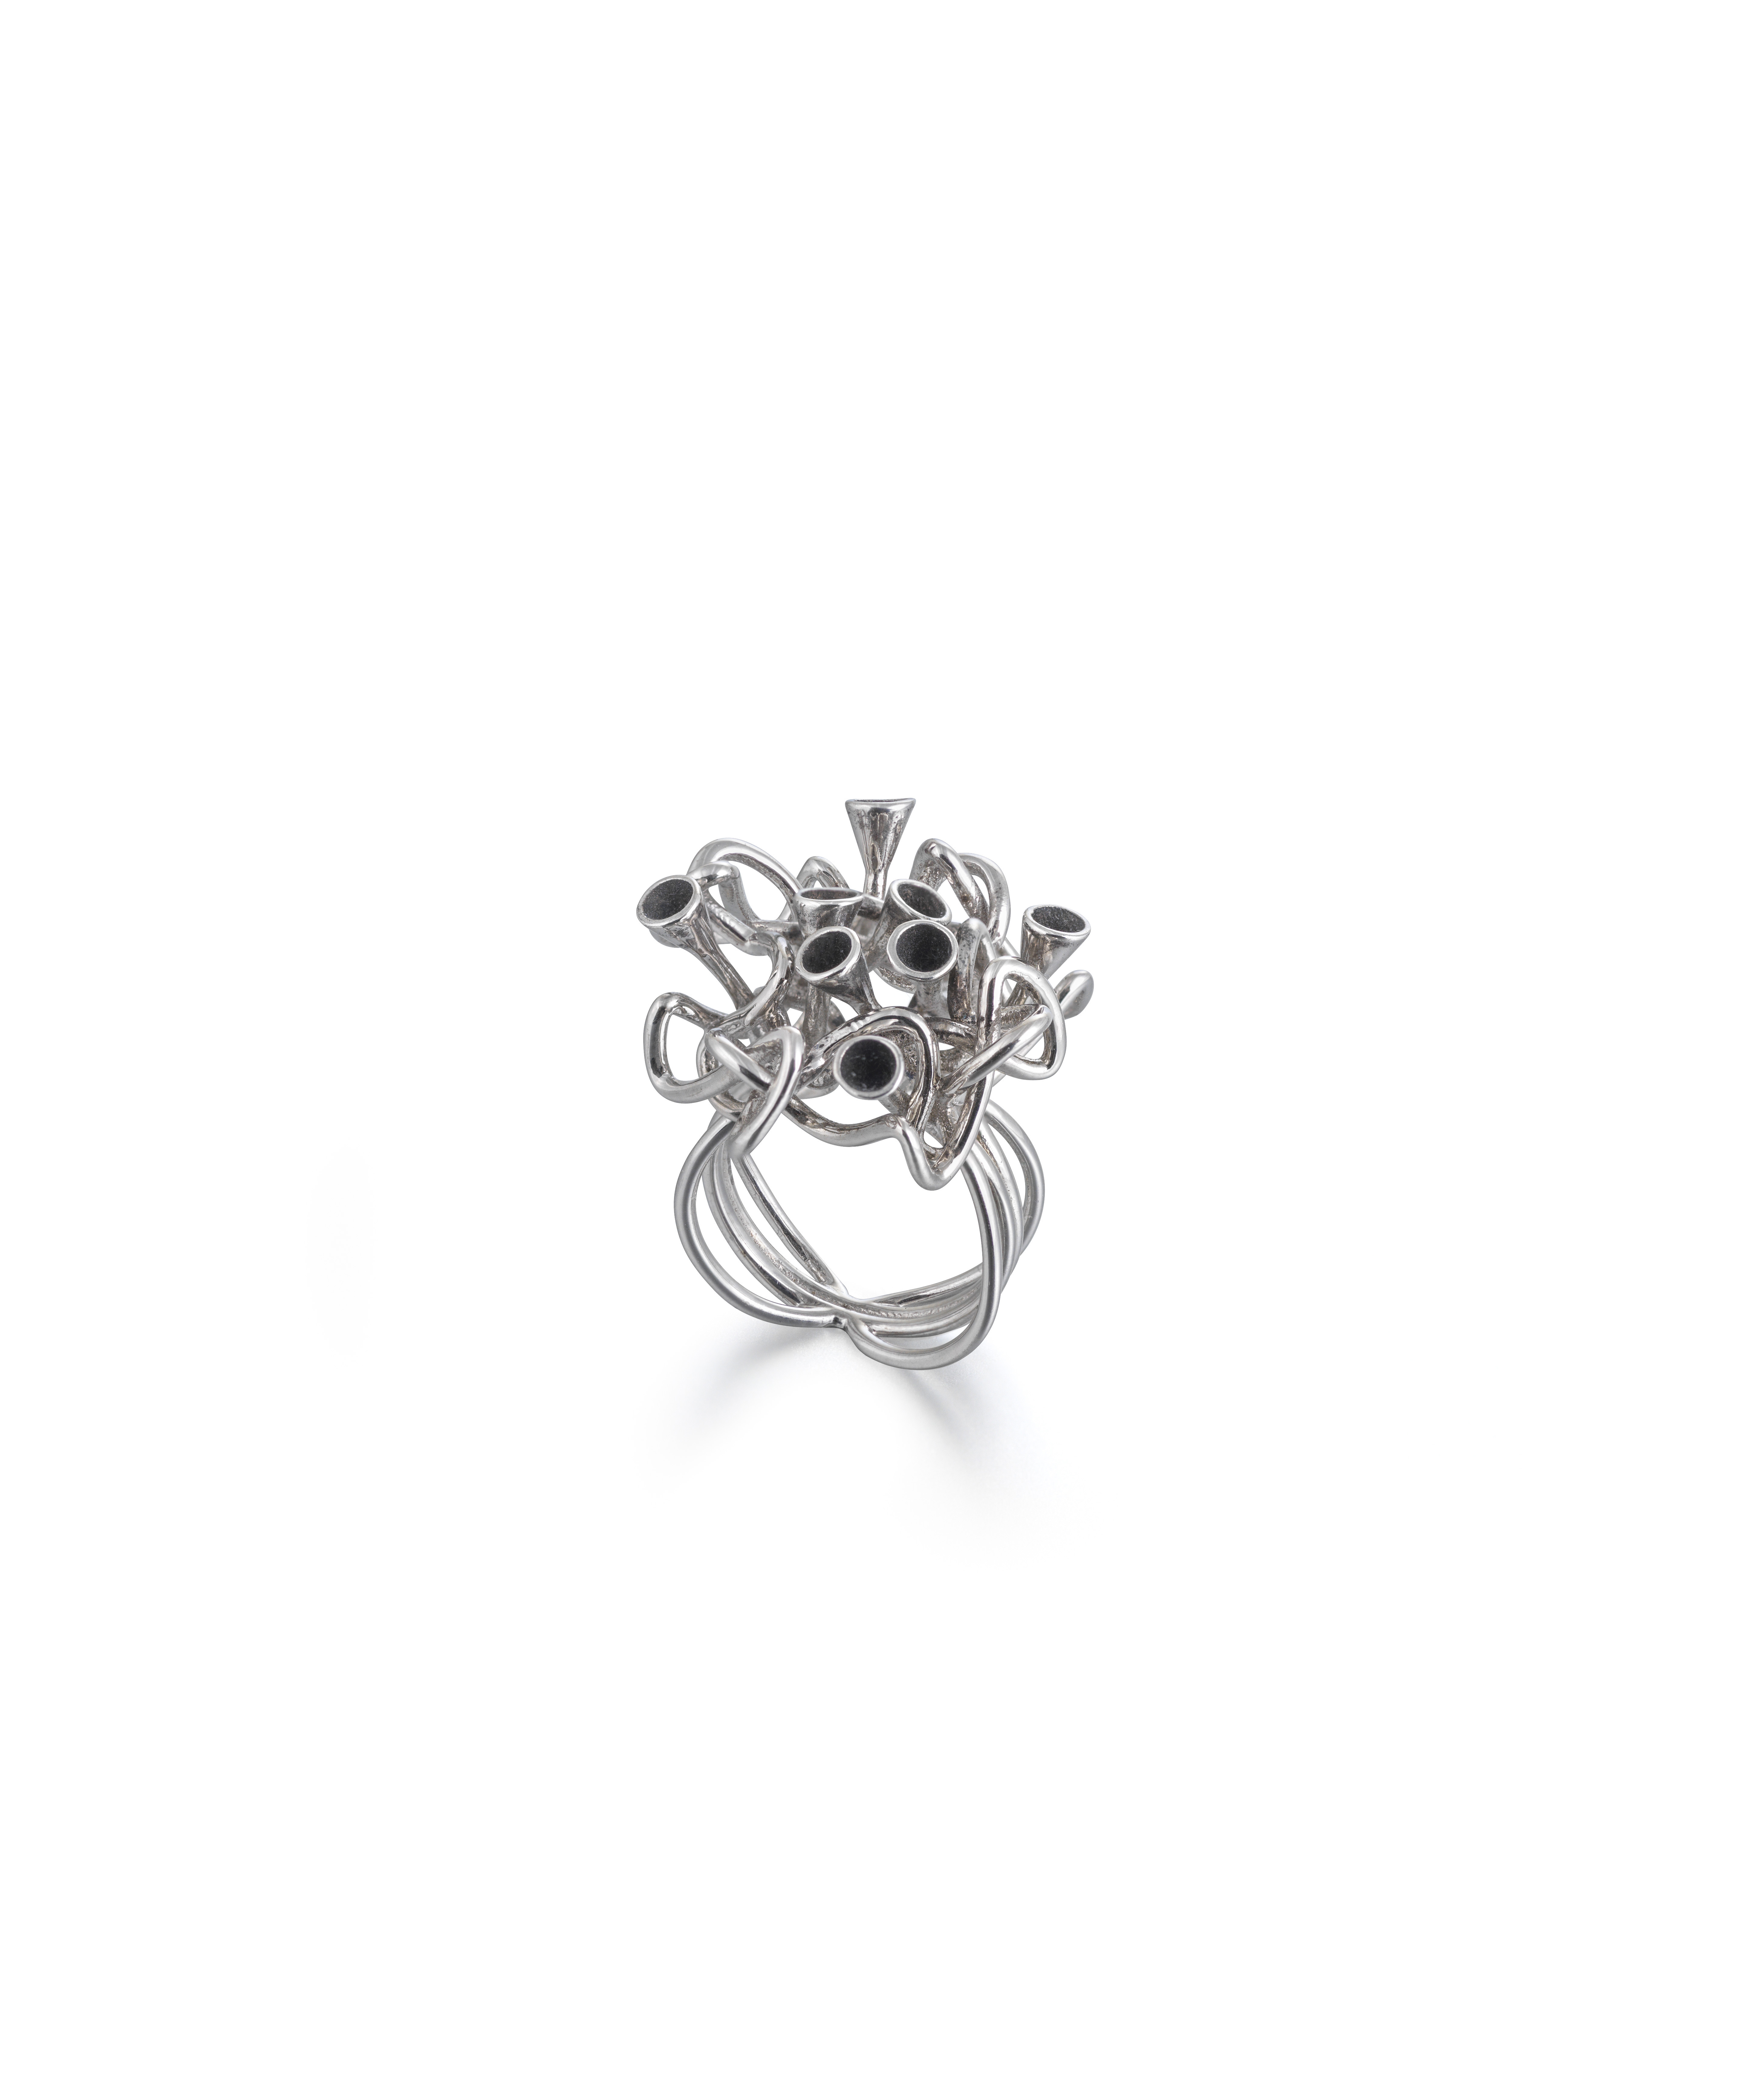 Silver oxidized knot ring